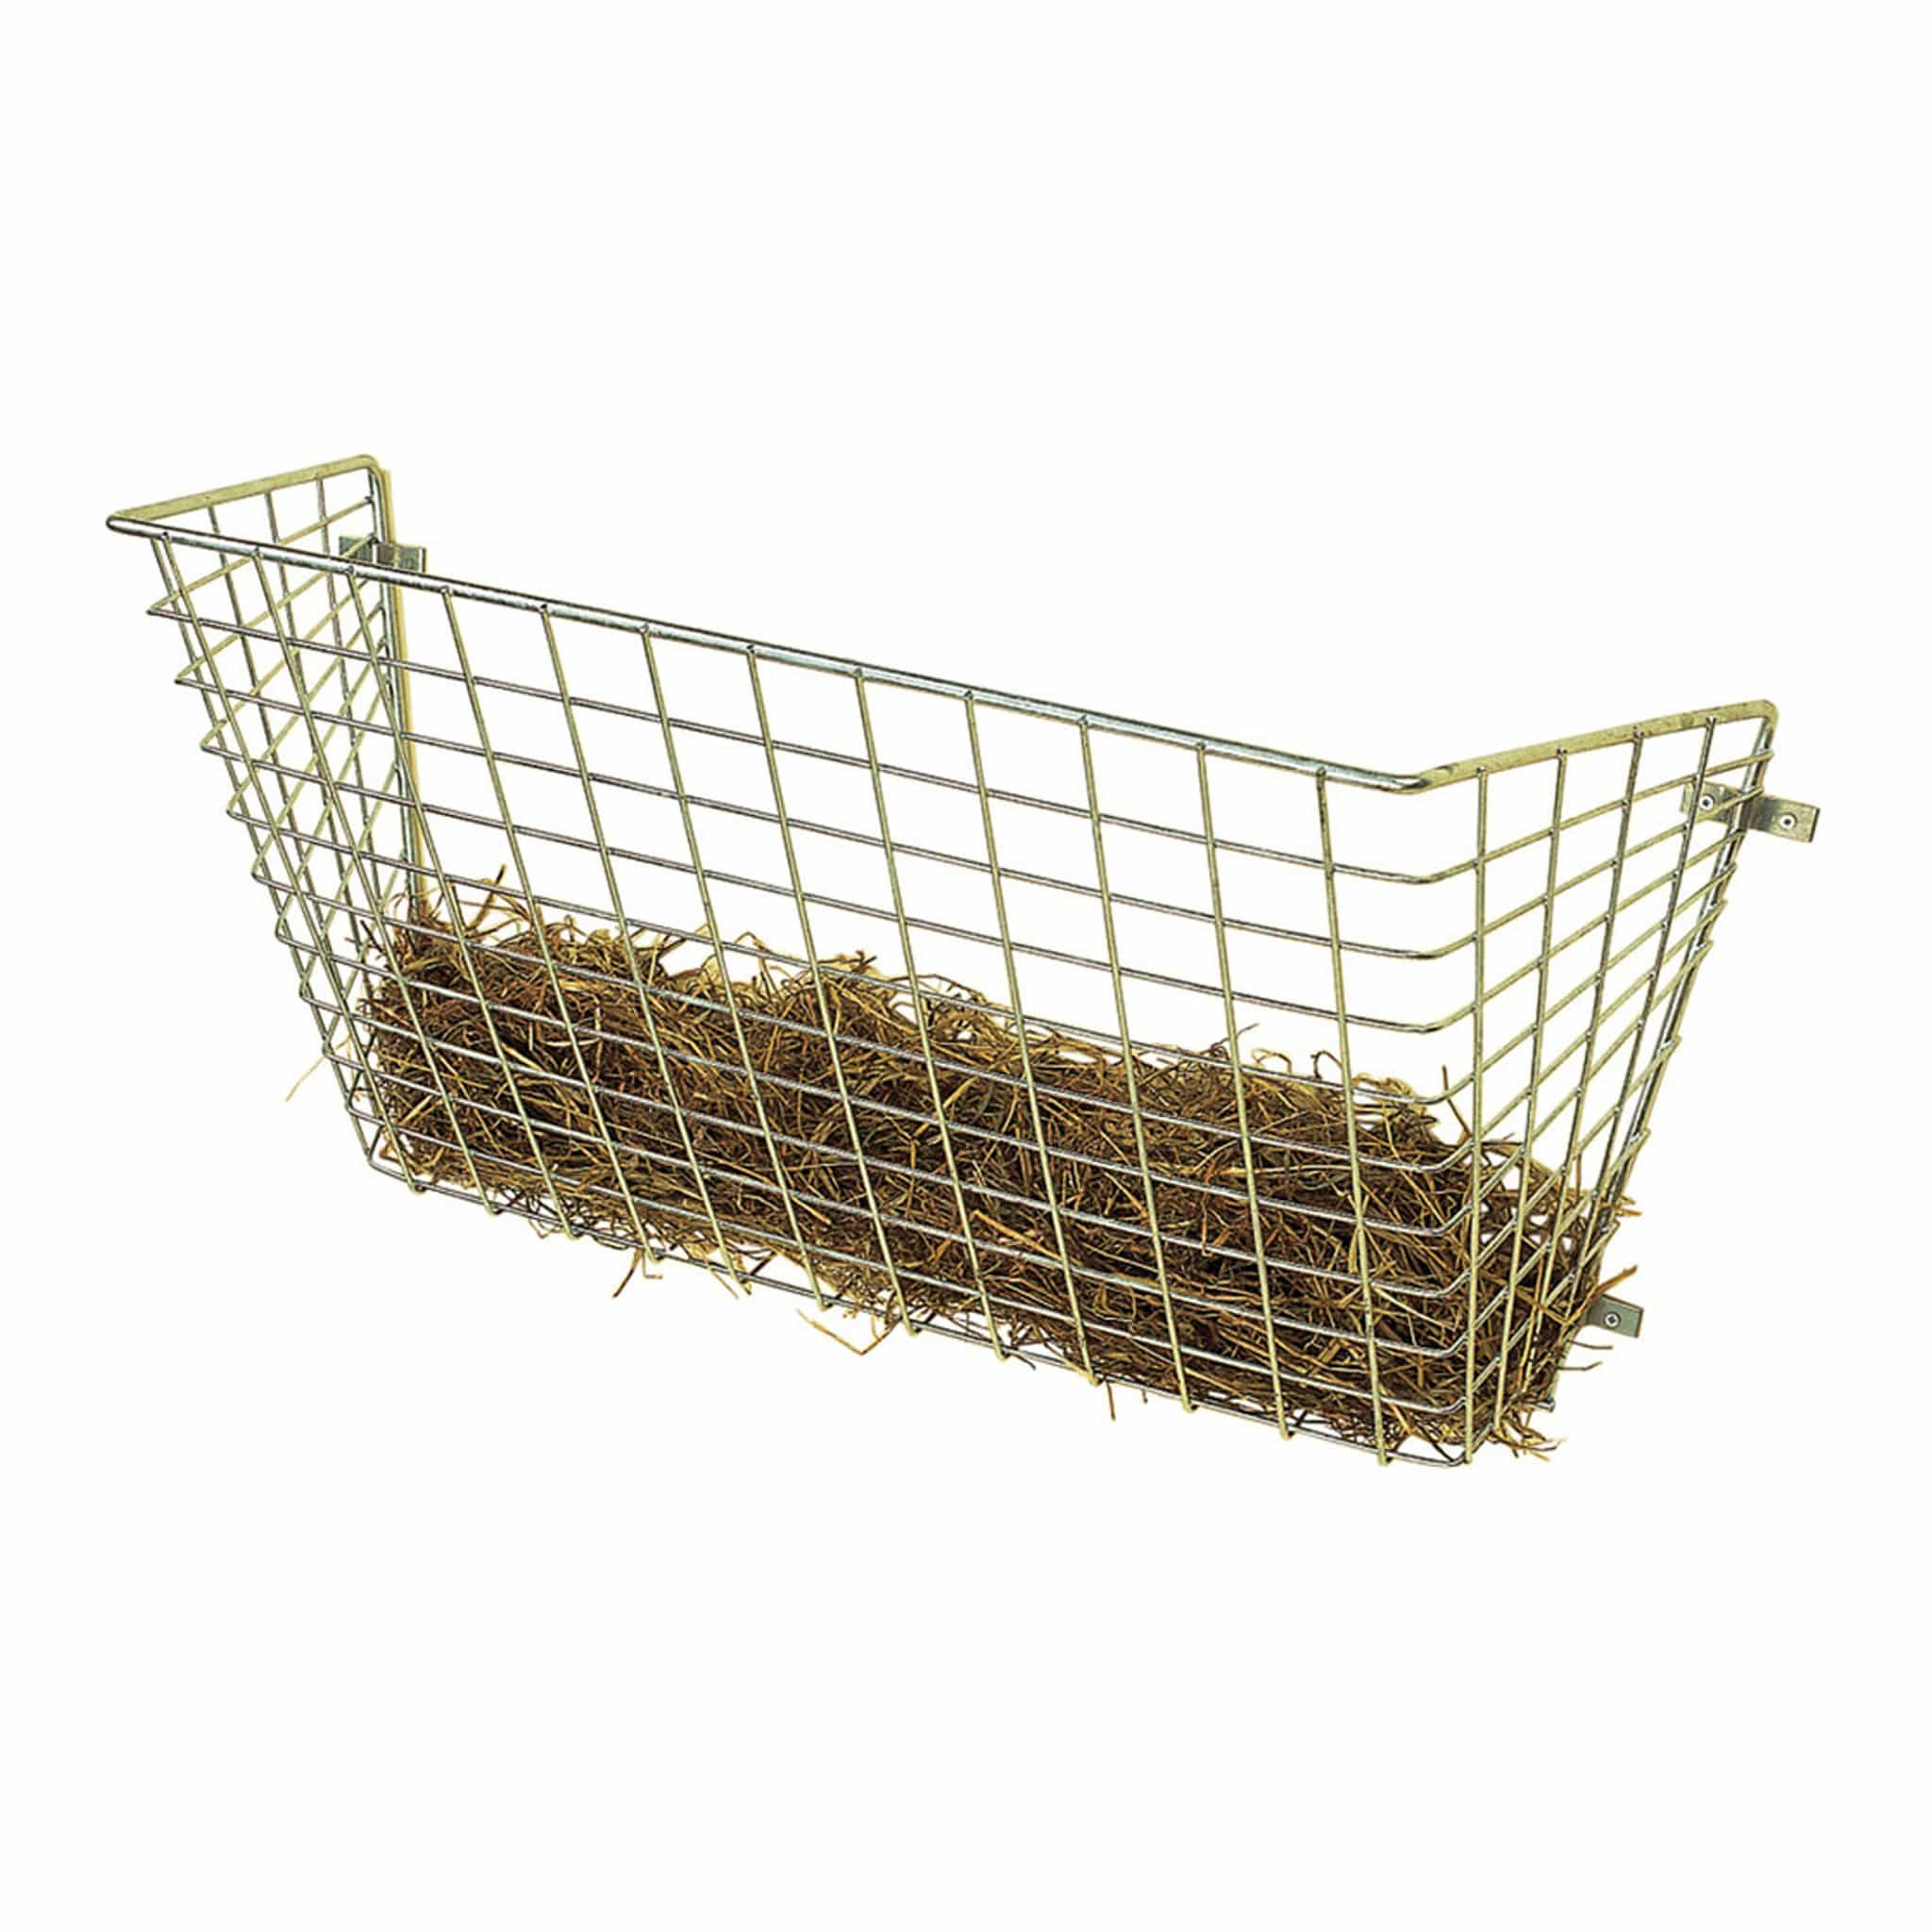 Stubbs Haylage Rack in Silver 7910